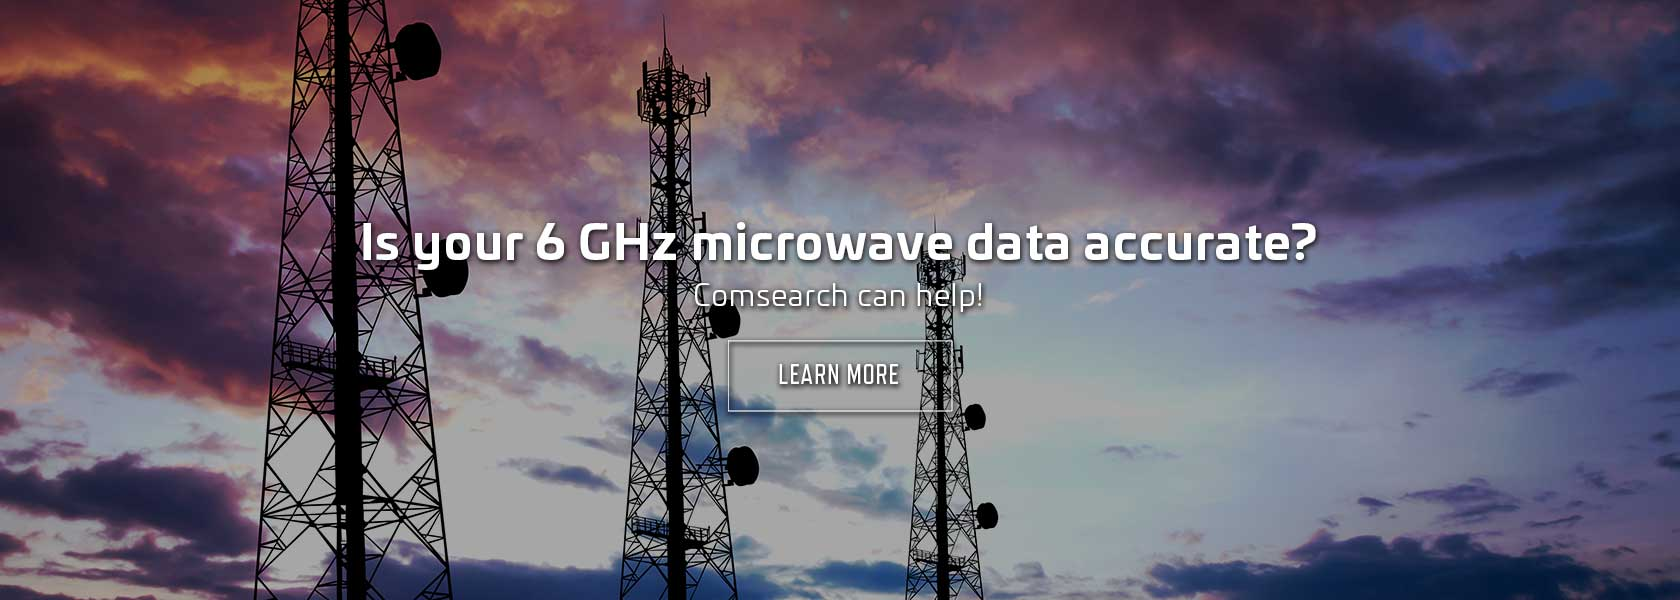 Comsearch will make sure your 6 GHz microwave data is accurate!